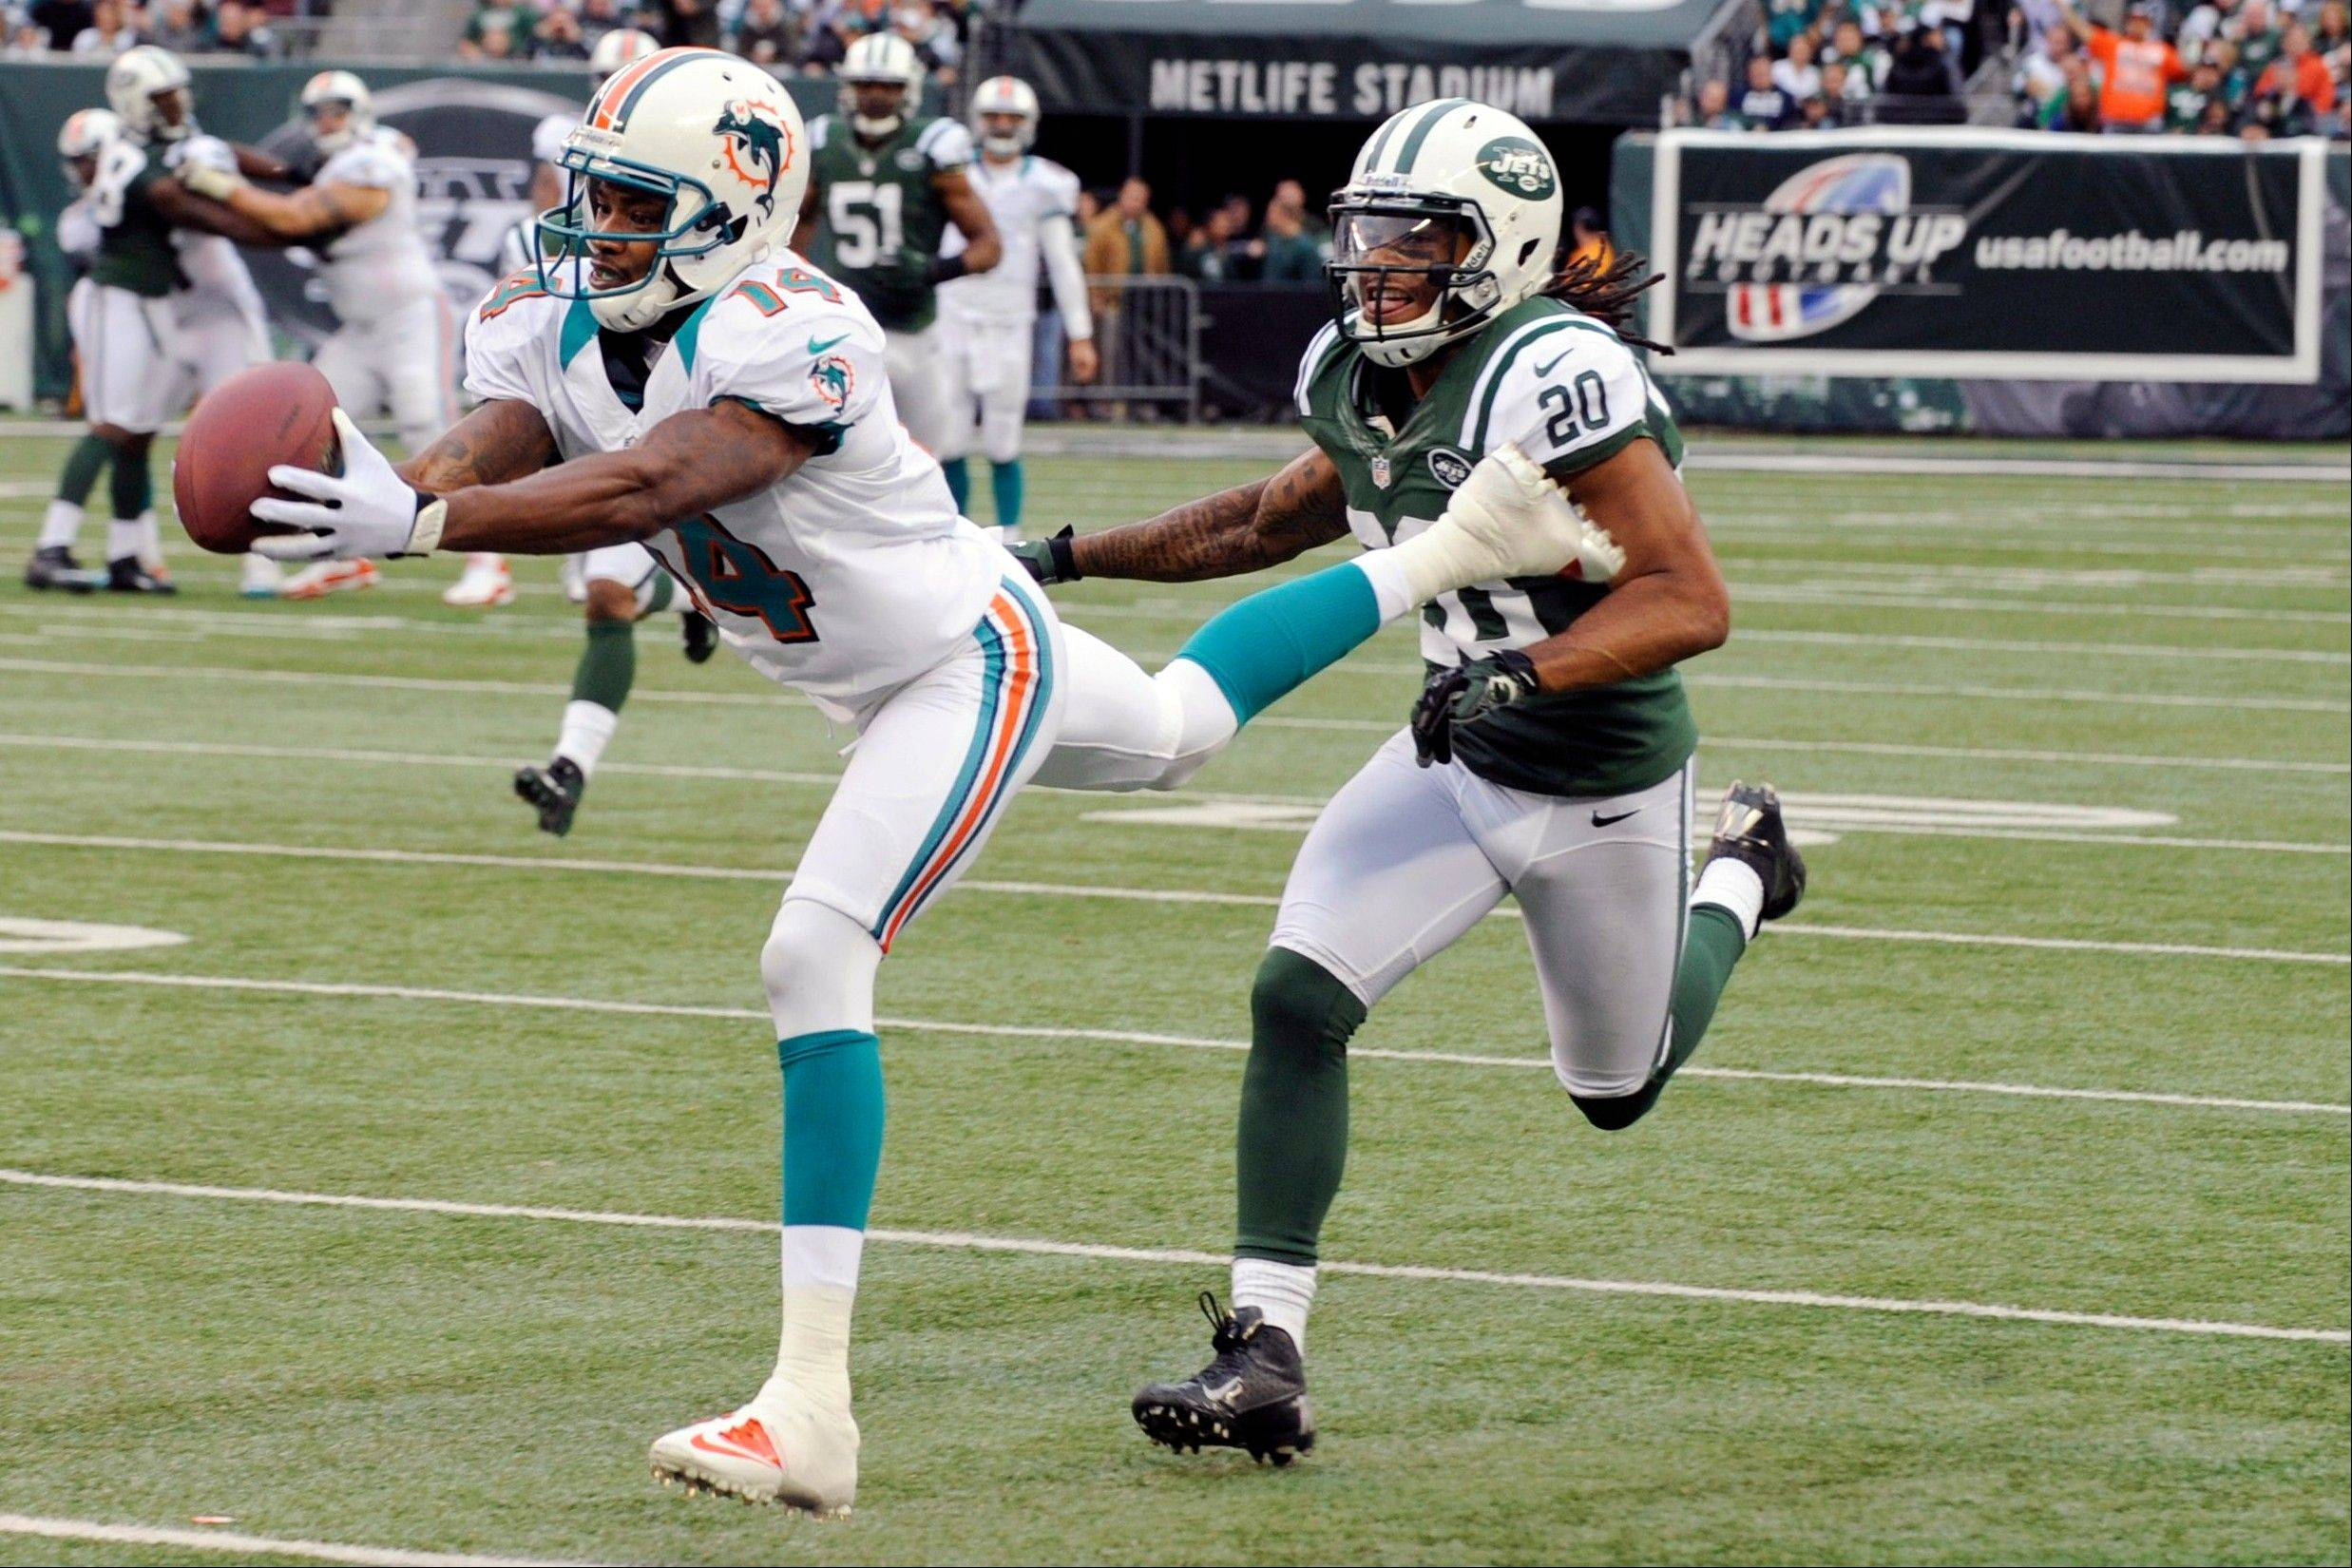 Miami Dolphins wide receiver Marlon Moore (14) catches a pass for a first down in front of New York Jets cornerback Kyle Wilson (20) during the first half in East Rutherford, N.J.